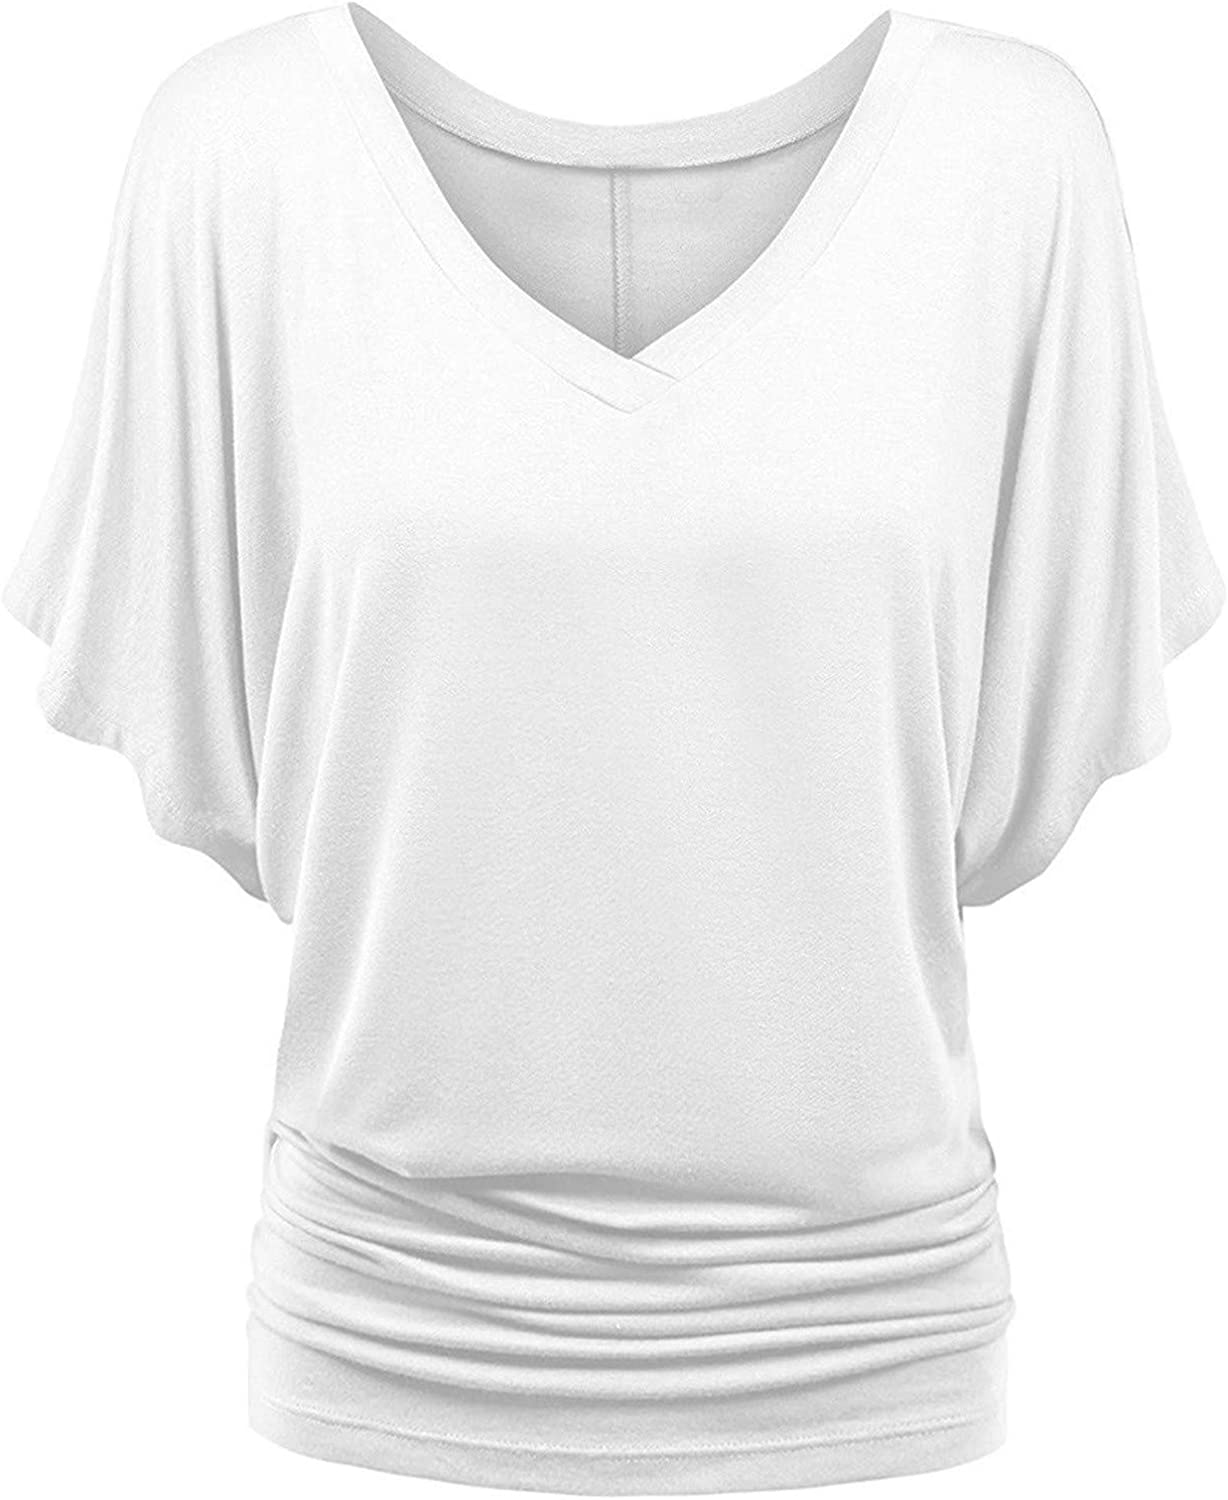 Aukbays Women's Solid Batwing Sleeve Boat Neck V Neck Dolman Top with Side Shirring Tees Blouses Shirts Tunic